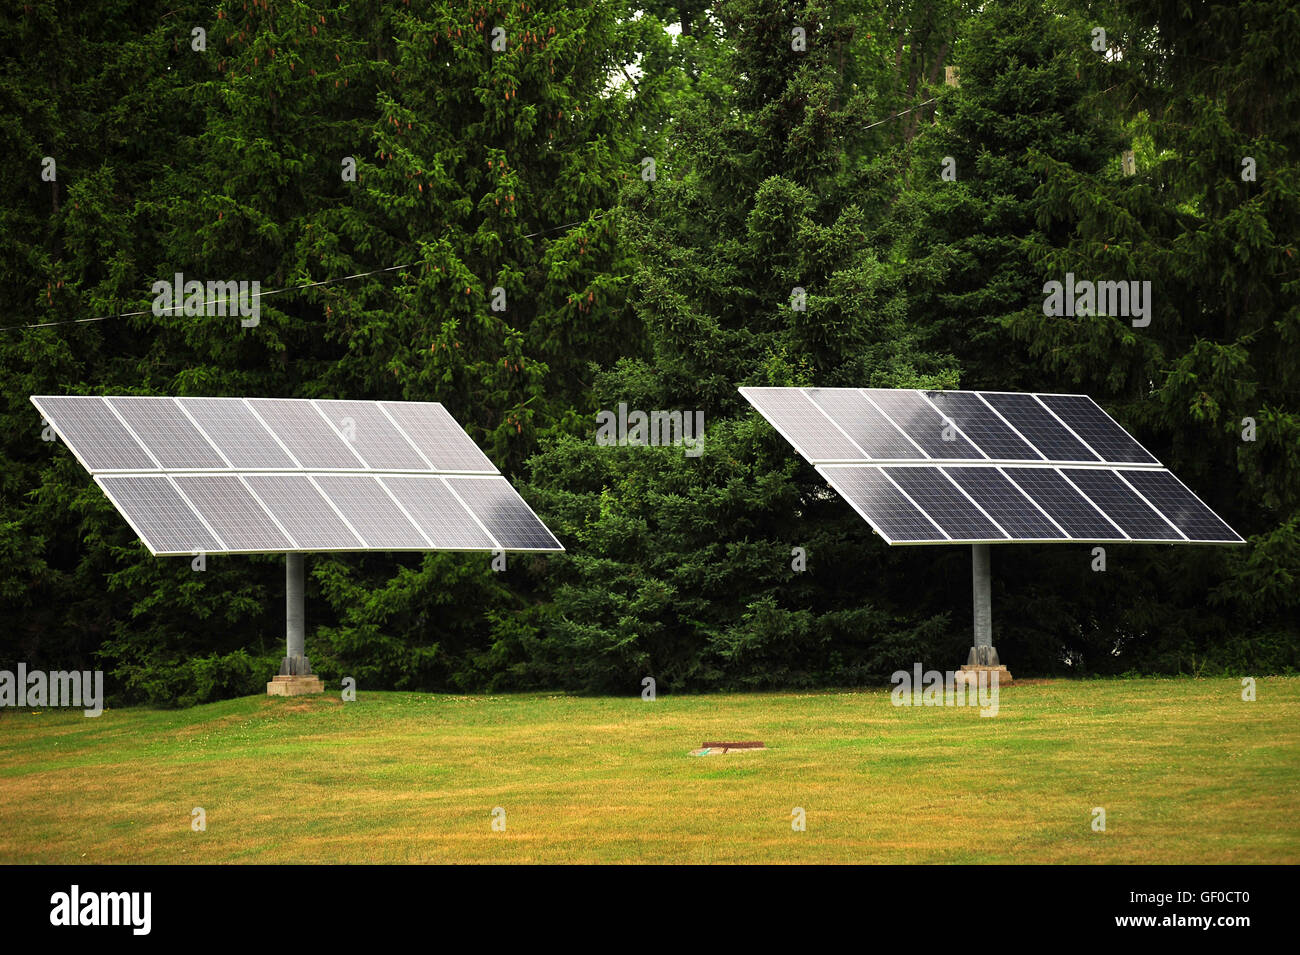 Renewable solar energy panels on the outskirts of the Canadian city of London, Ontario. - Stock Image